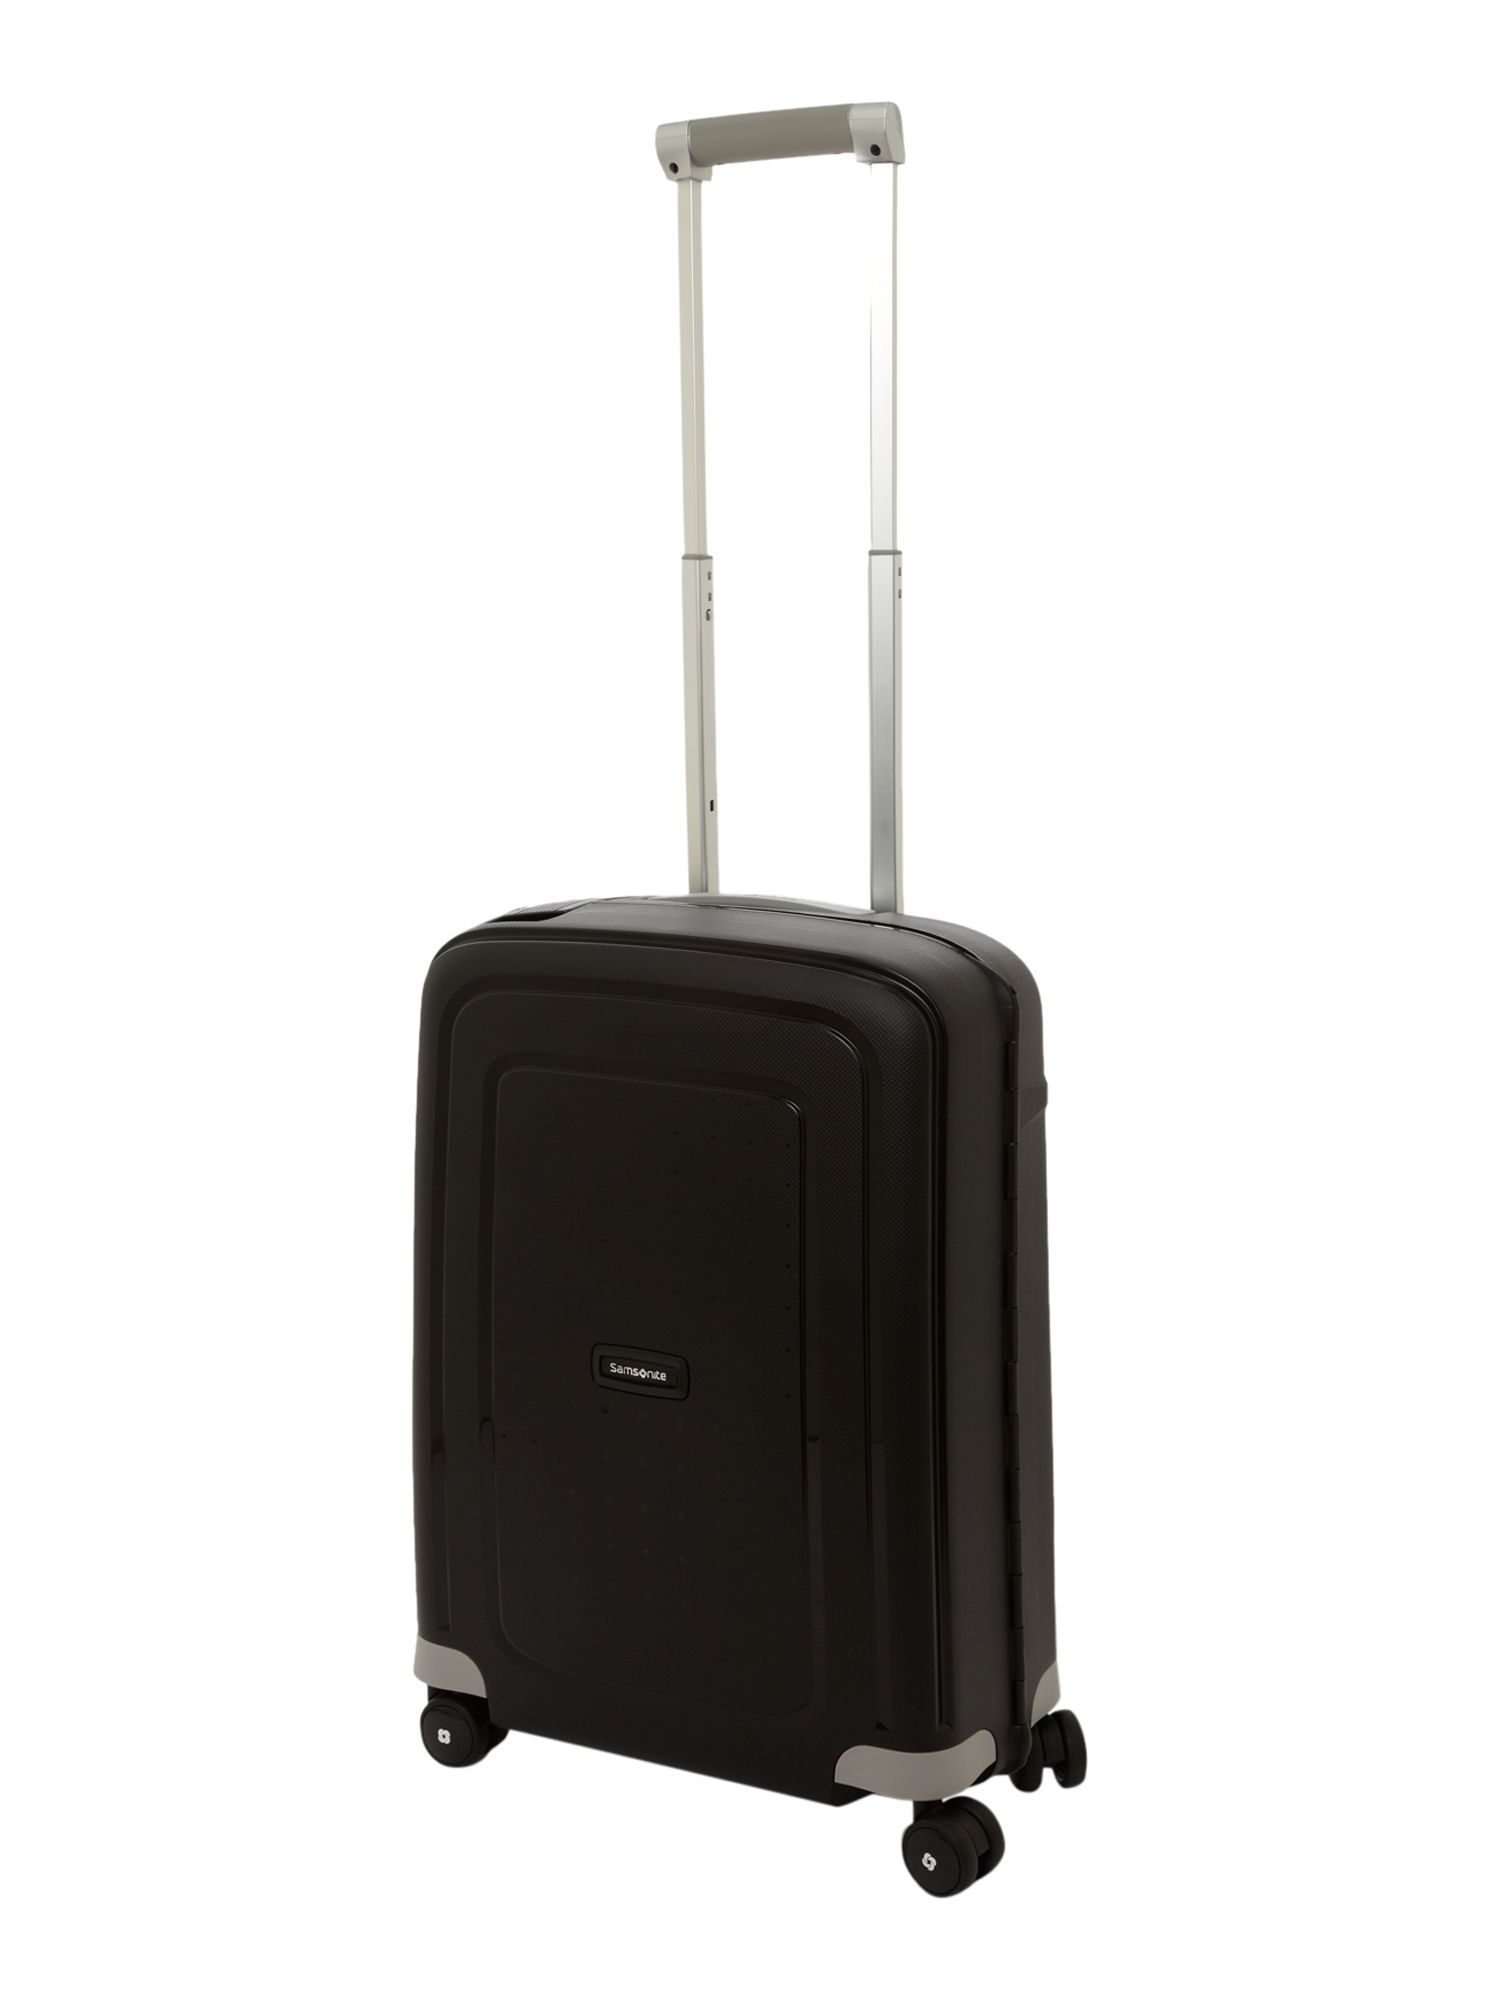 Samsonite S-Cure Black Range